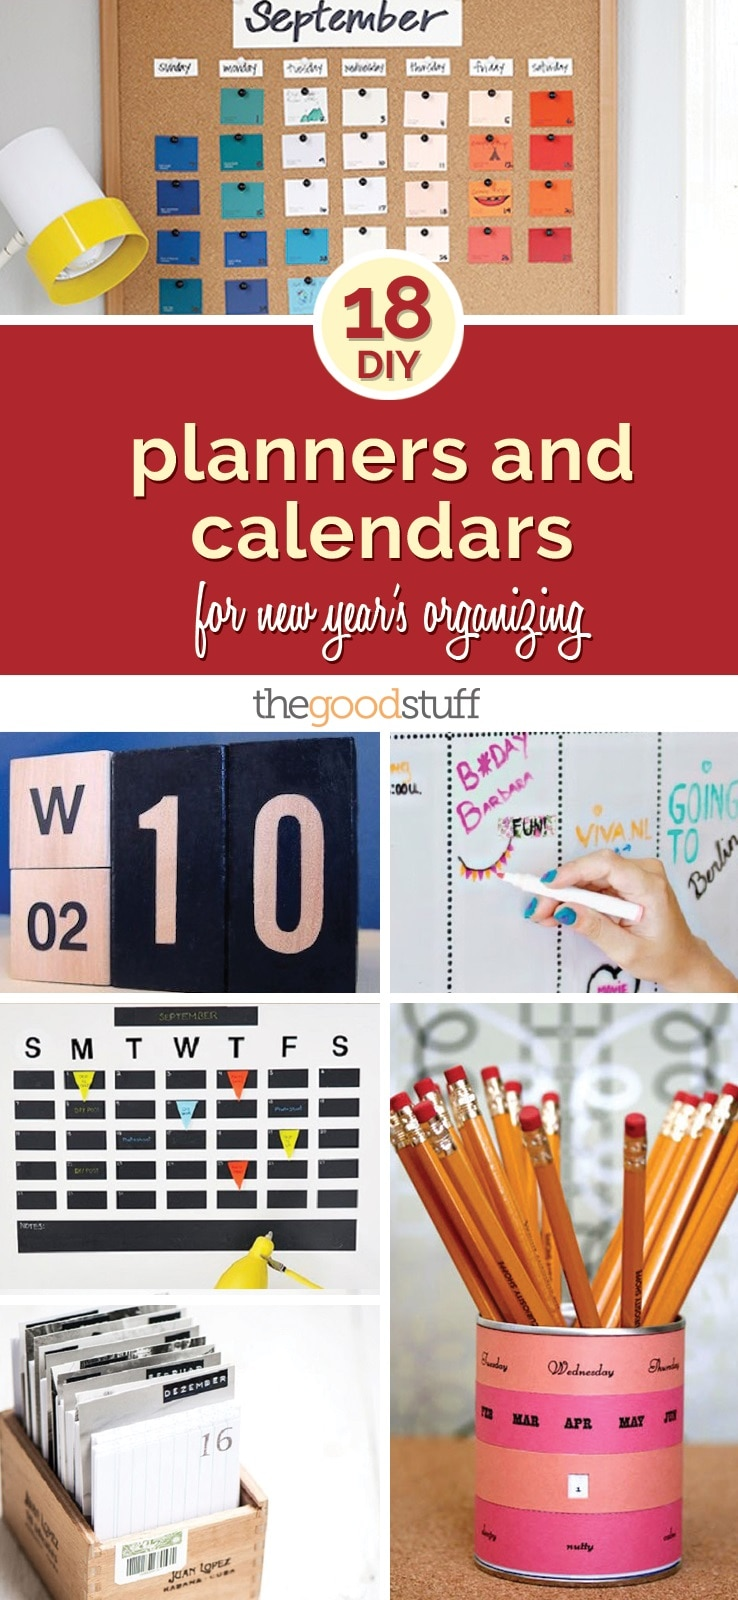 diy-planners-and-calendars